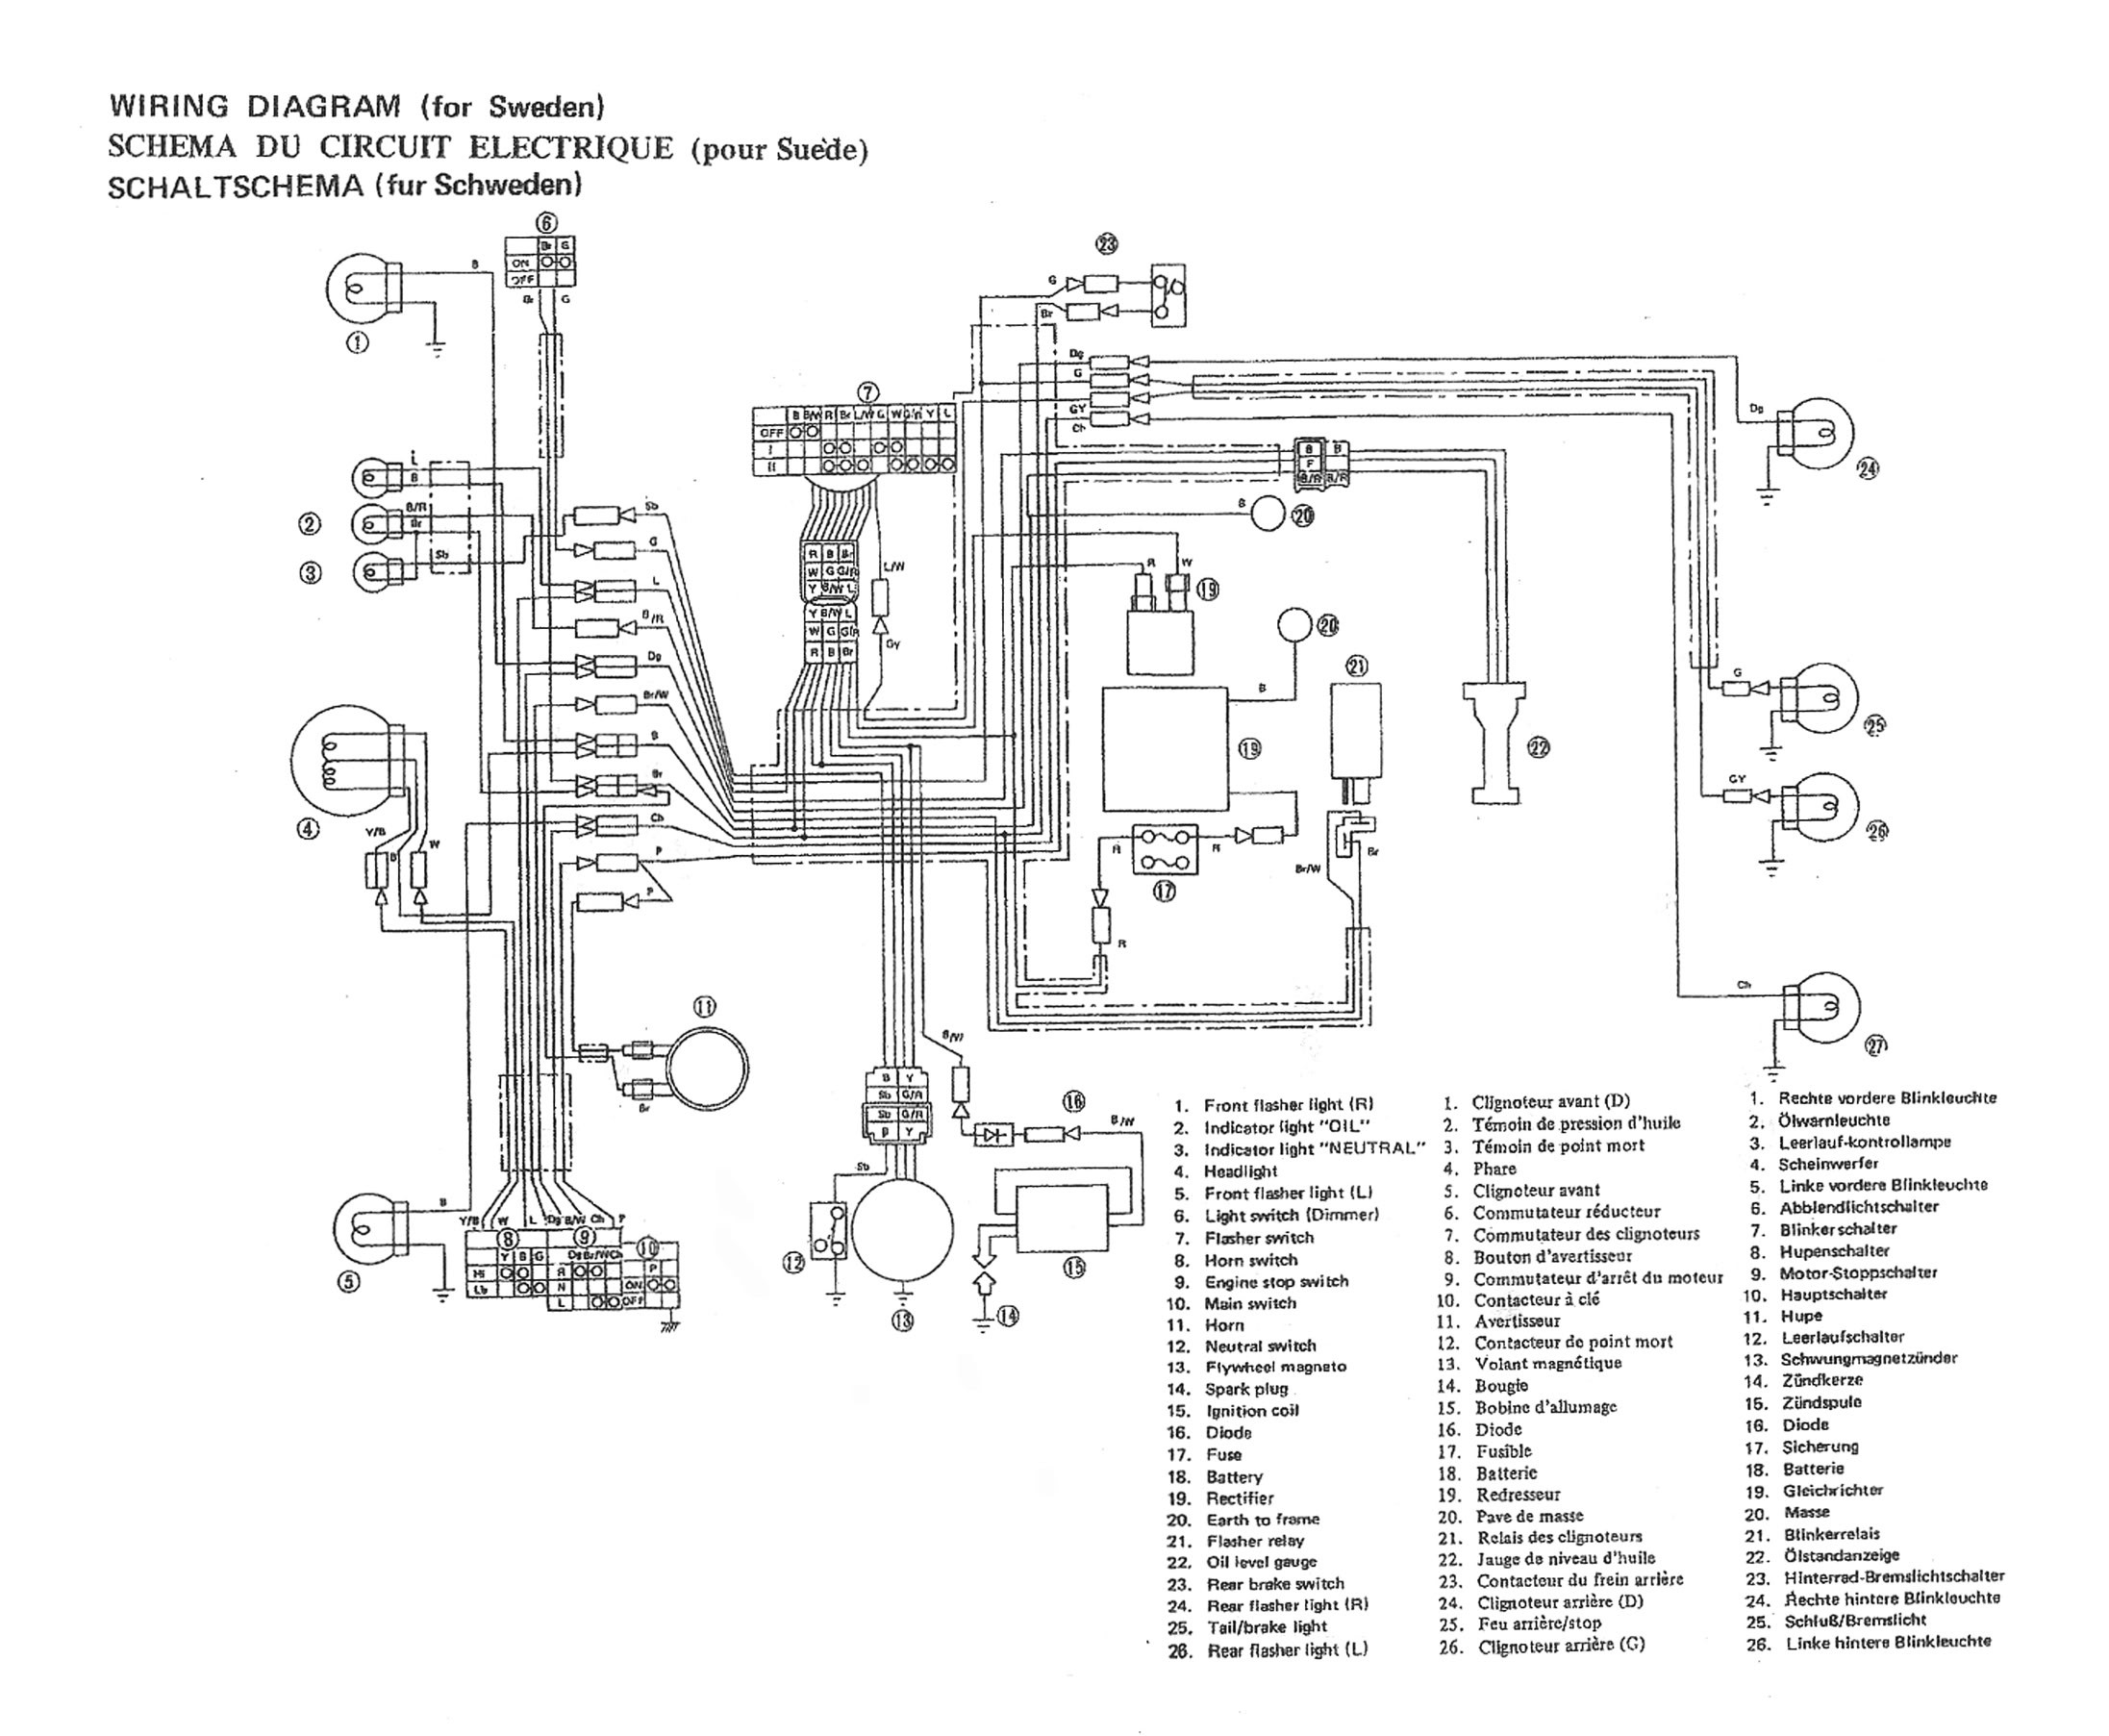 50cc 2 stroke wiring diagram wiring diagram 6 pin cdi wiring diagram vento wiring diagram machine learning